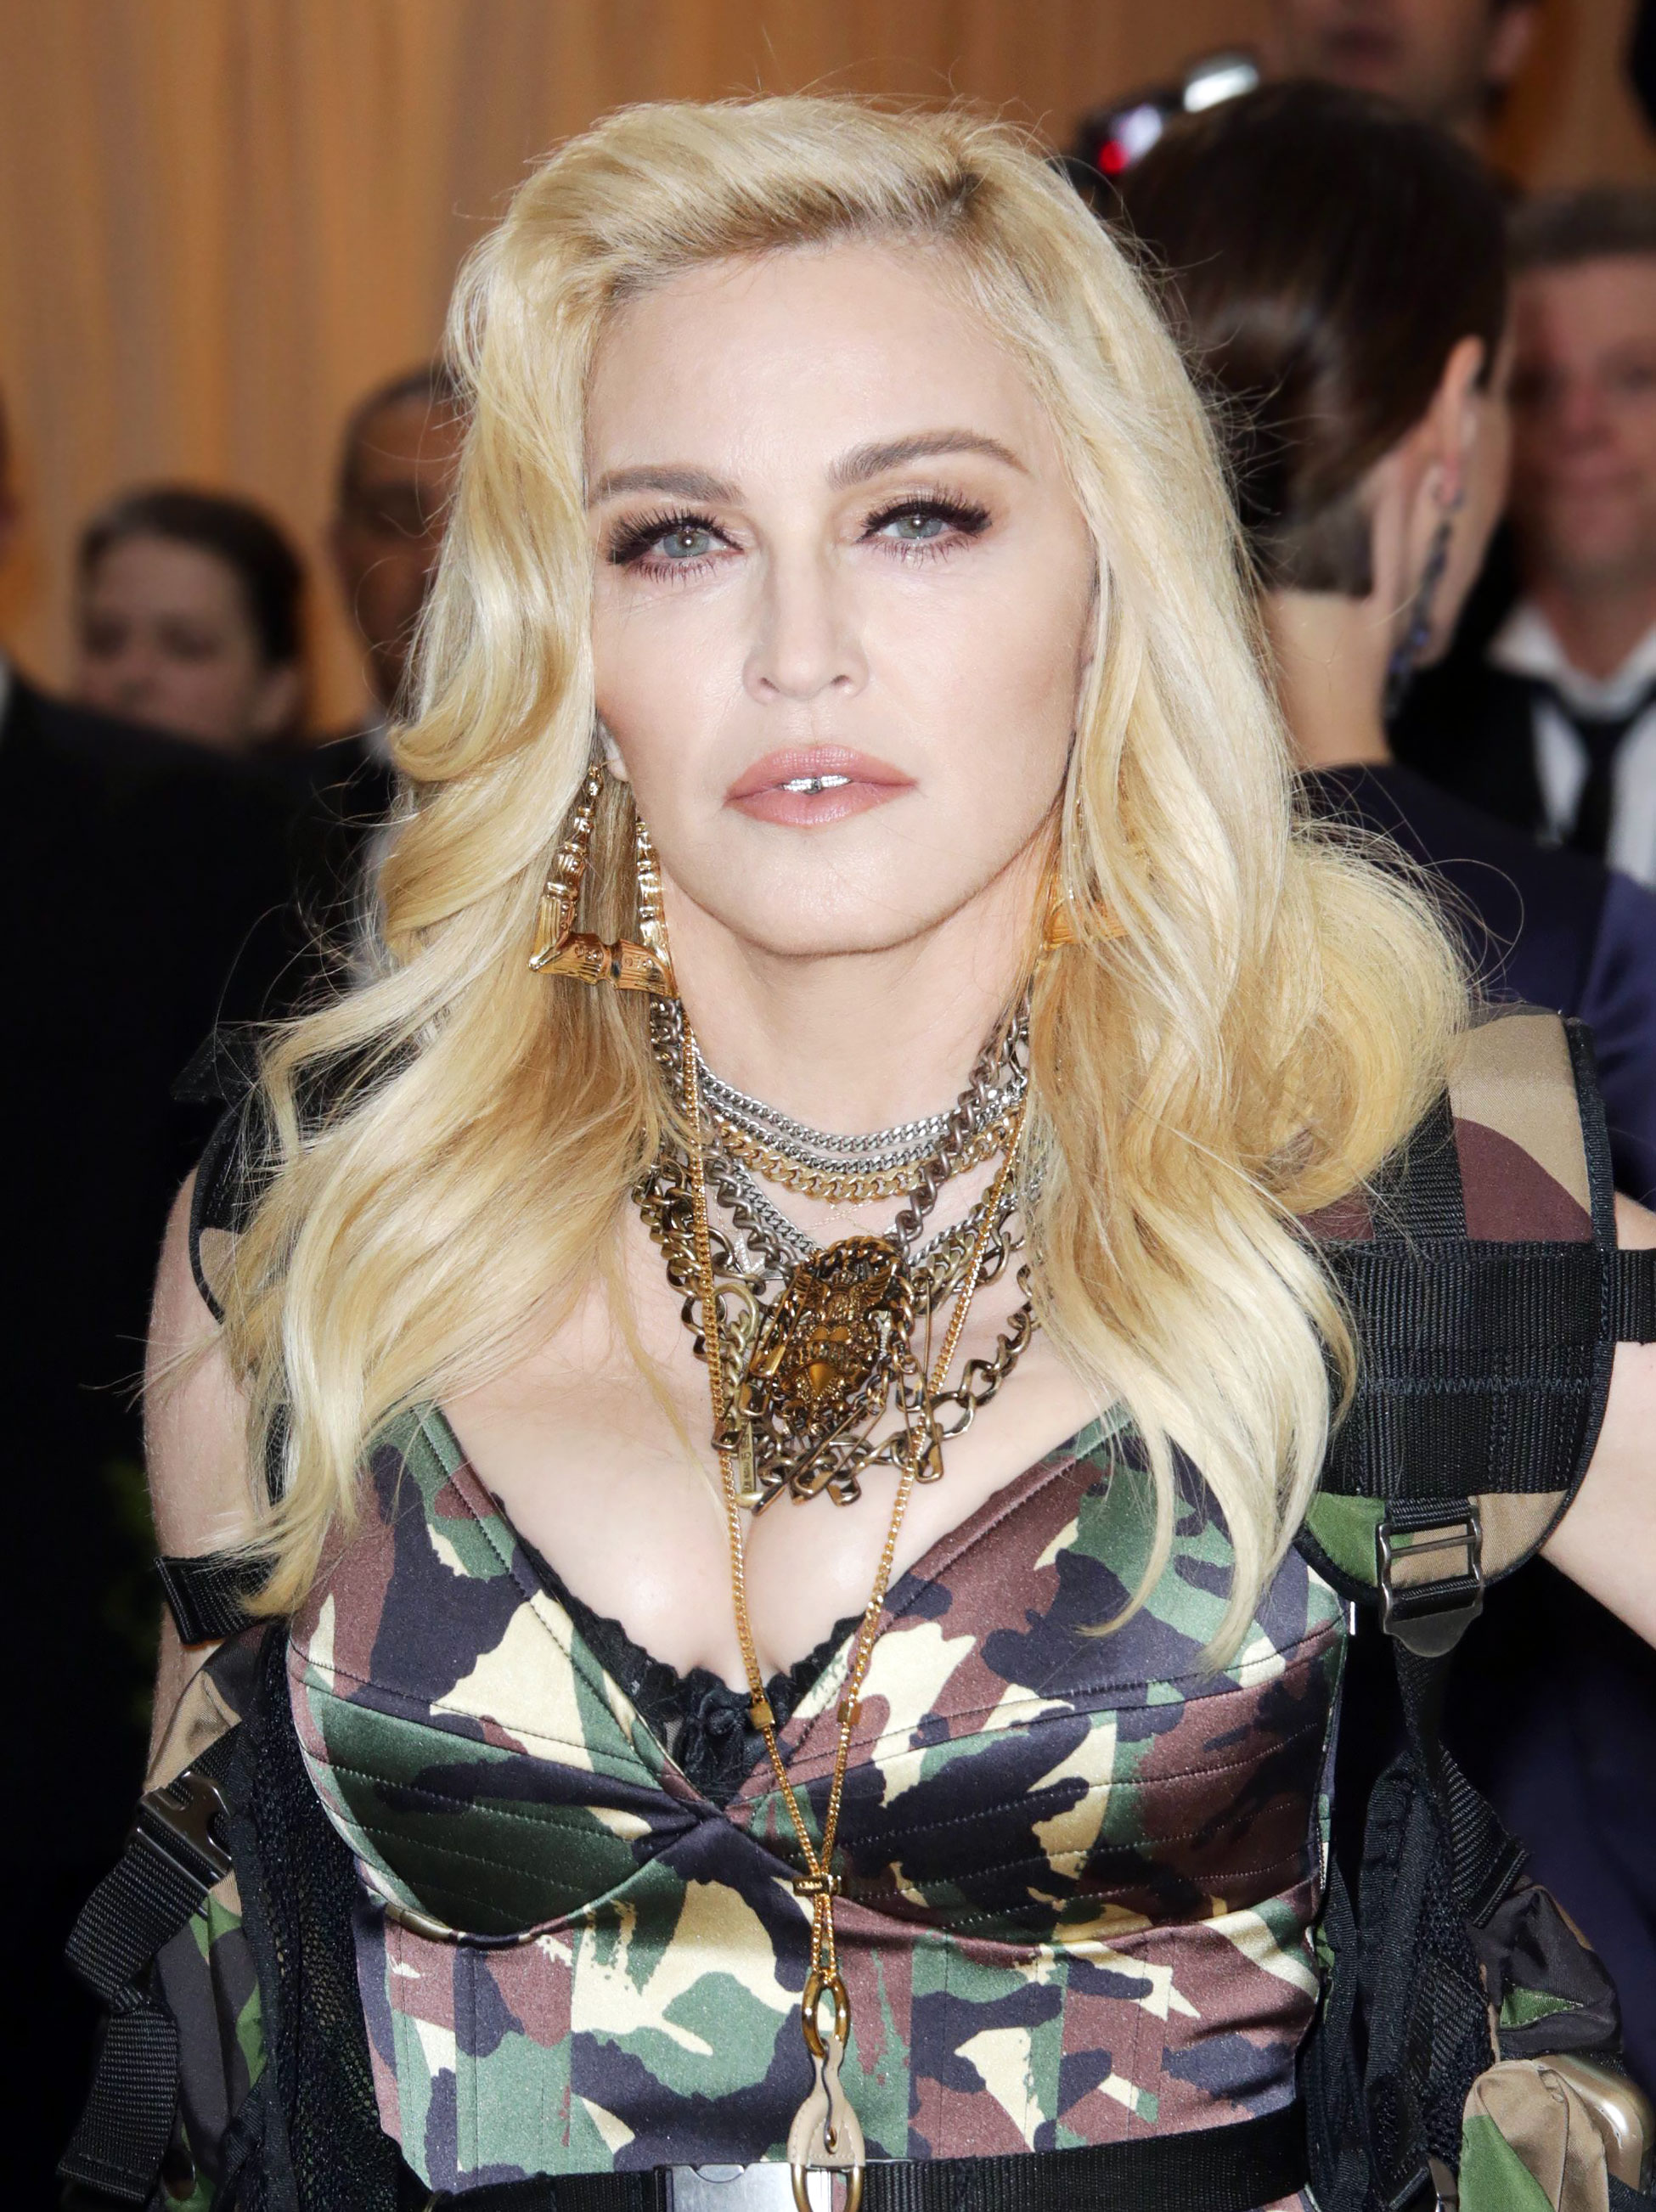 Madonna Says She Plans to 'Breathe in the COVID-19 Air' After Testing Positive for Antibodies